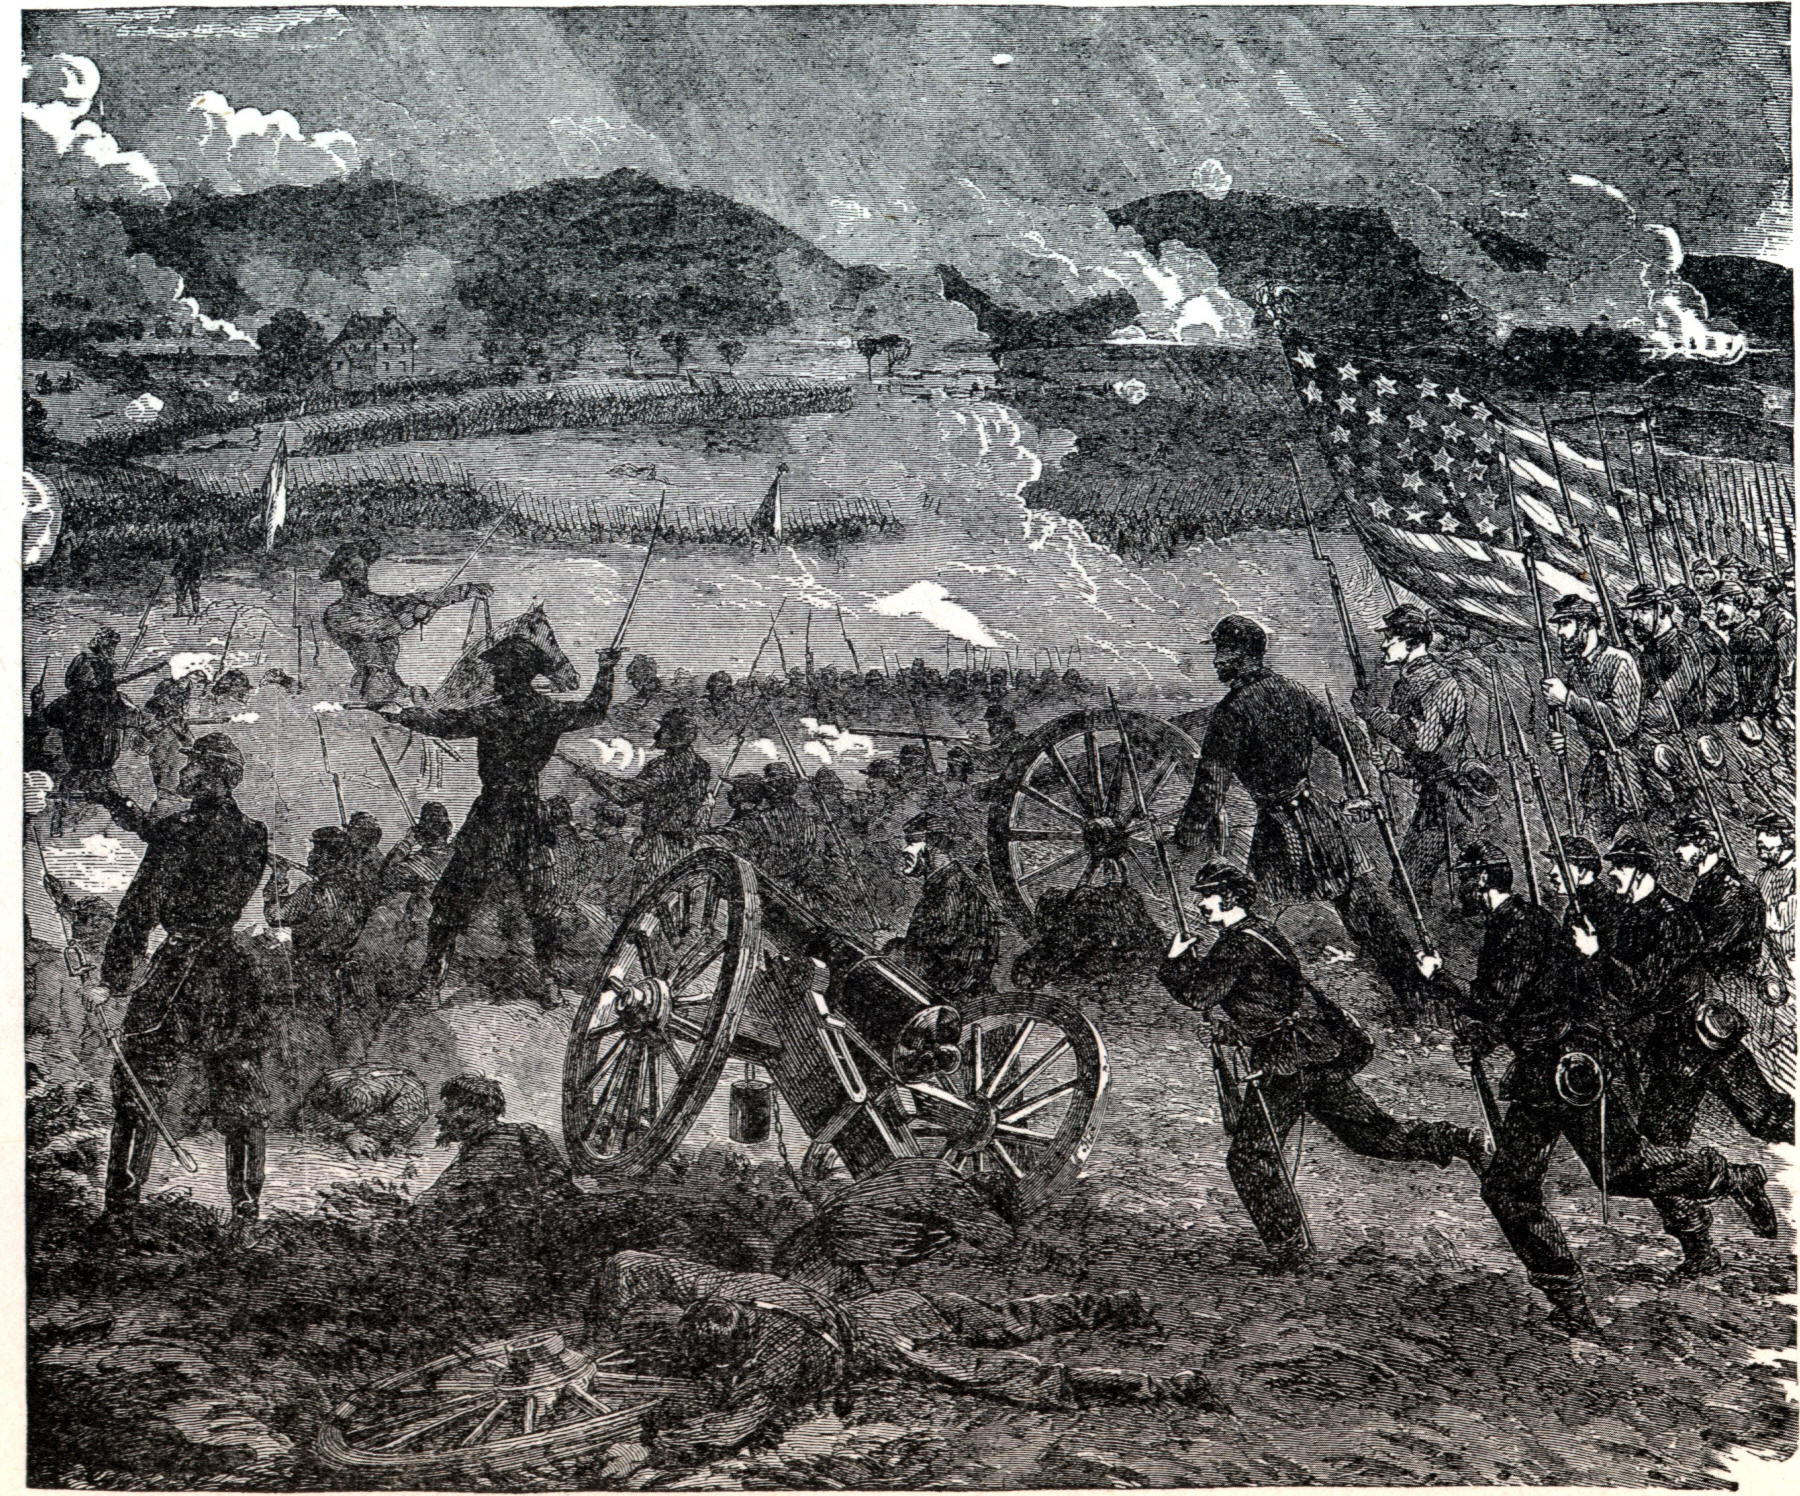 battle essay gettysburg The battle of gettysburg this essay the battle of gettysburg and other 64,000+ term papers, college essay examples and free essays are available now on reviewessayscom.